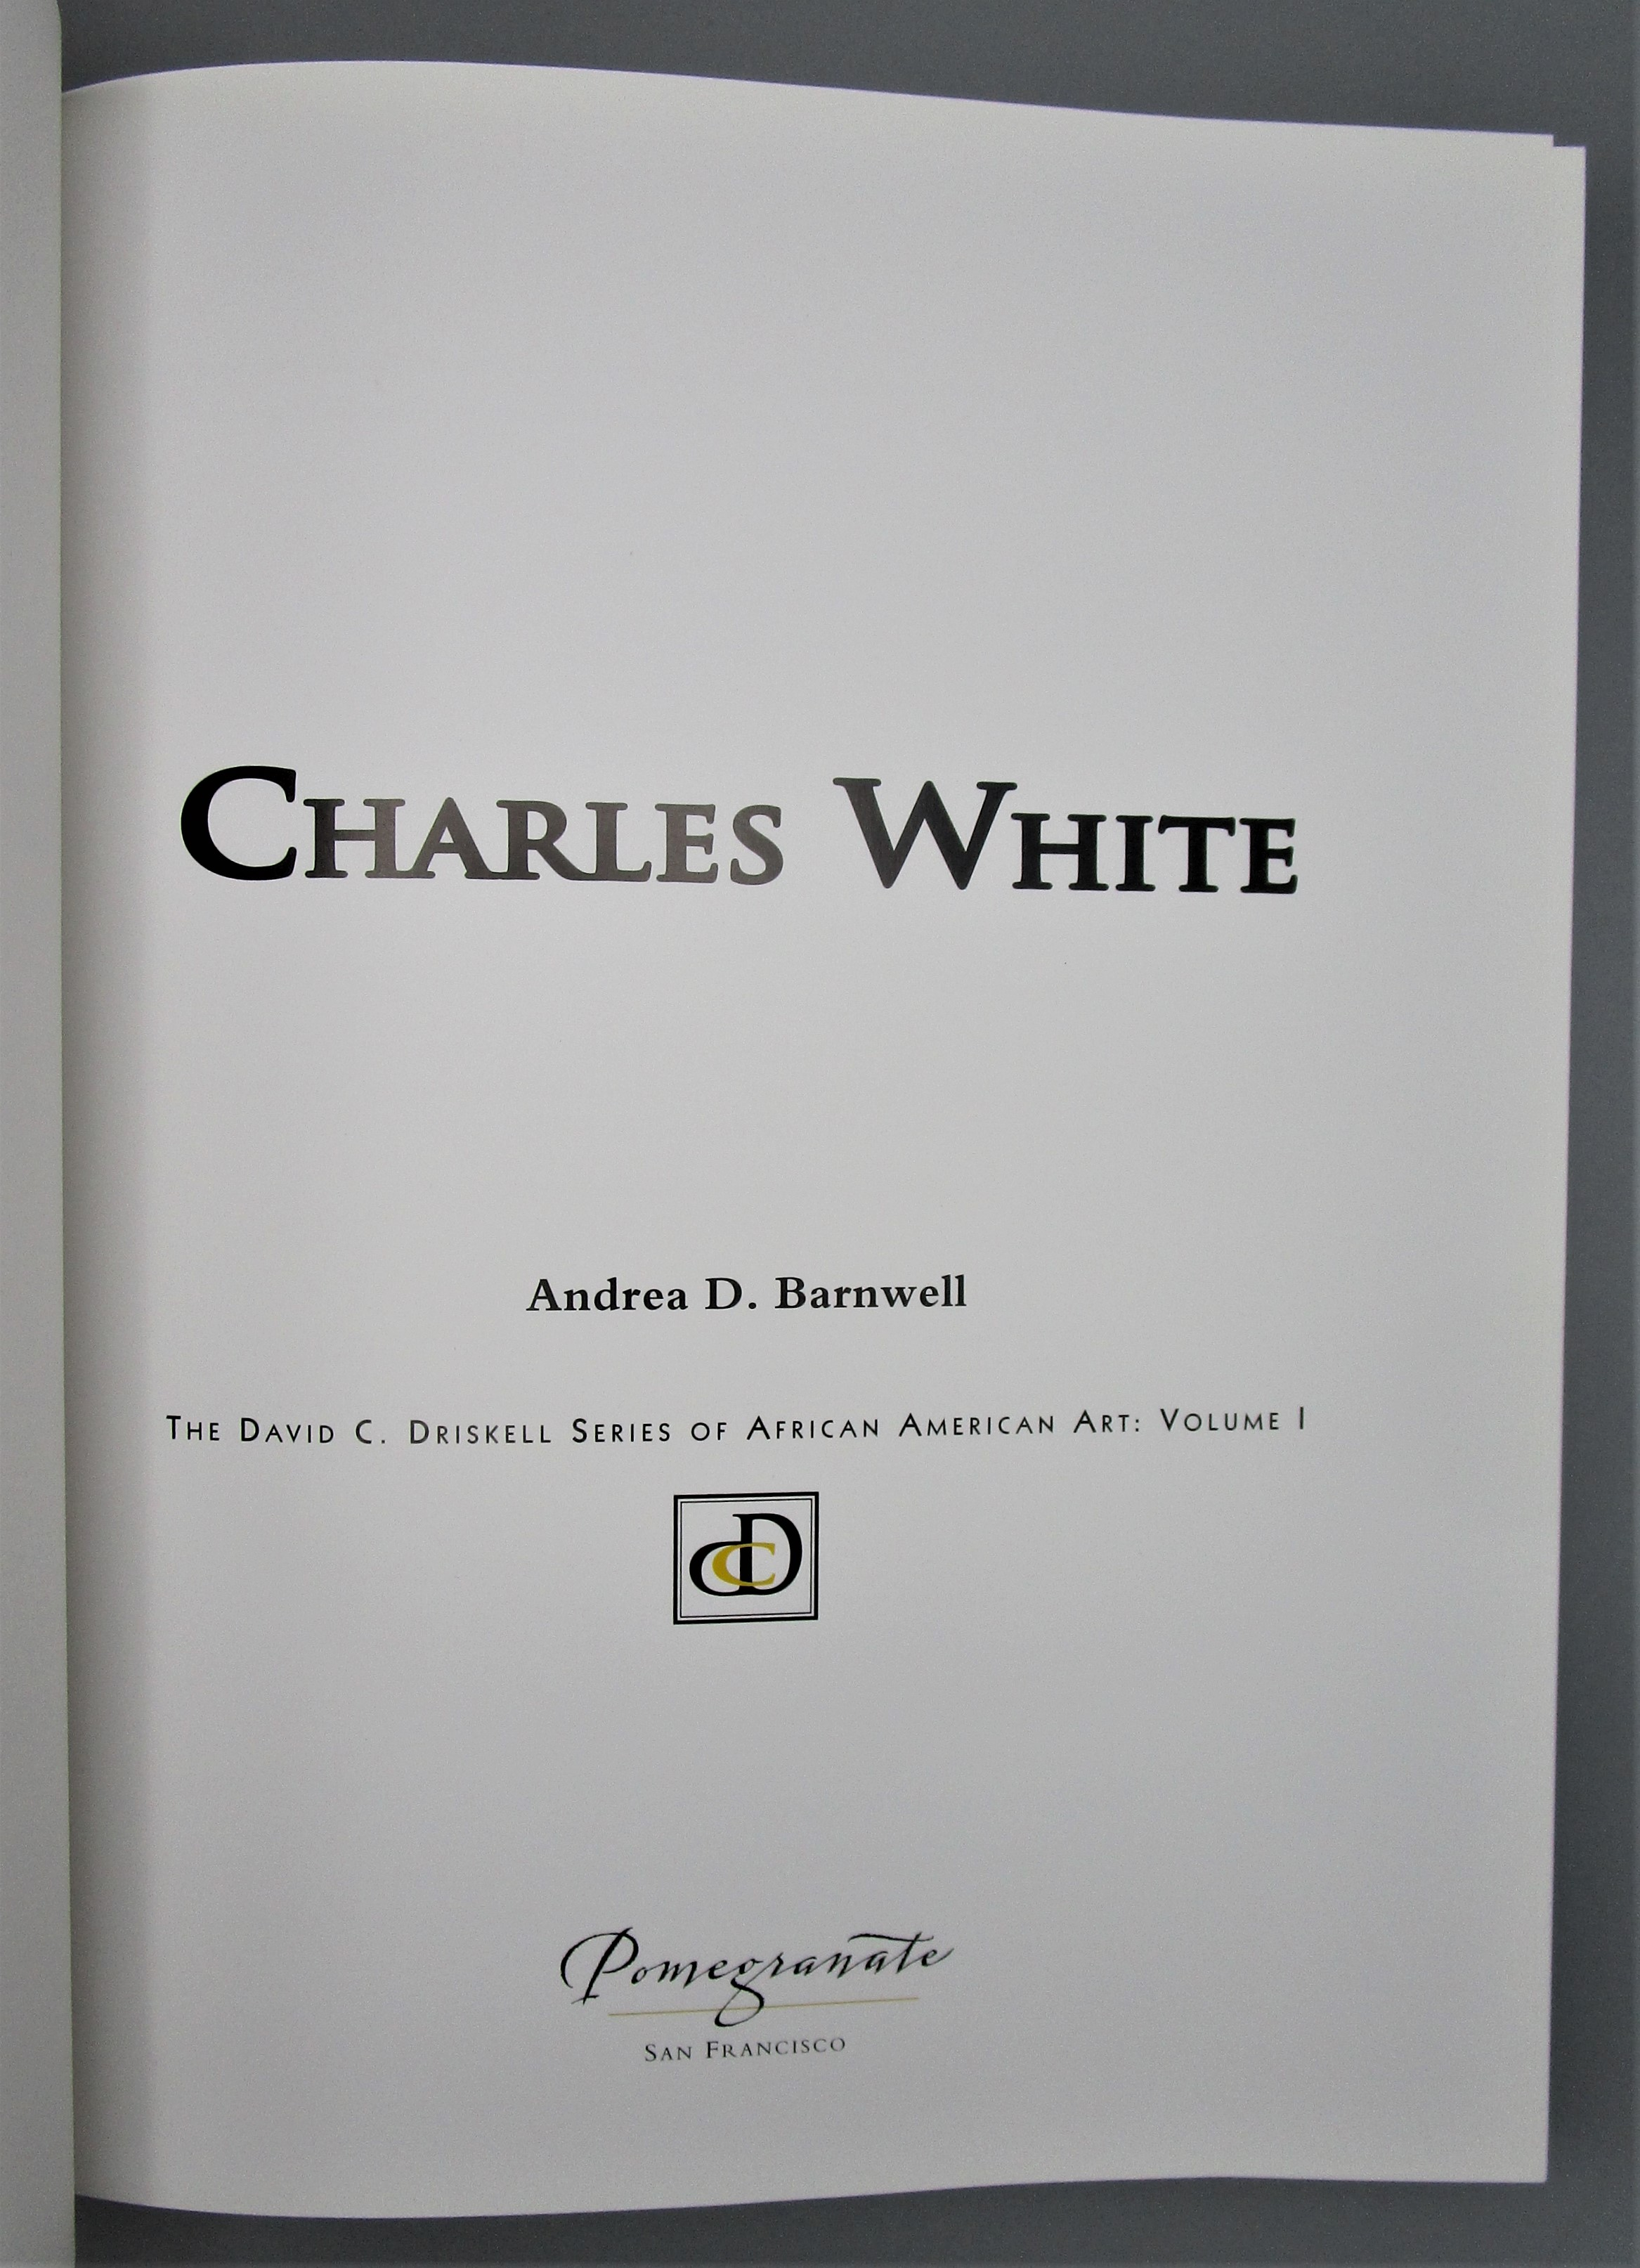 CHARLES WHITE: DAVID DRISKELL SERIES OF AFRICAN AMERICAN ART VOL 1, by Andrea D. Barnwell - 2002